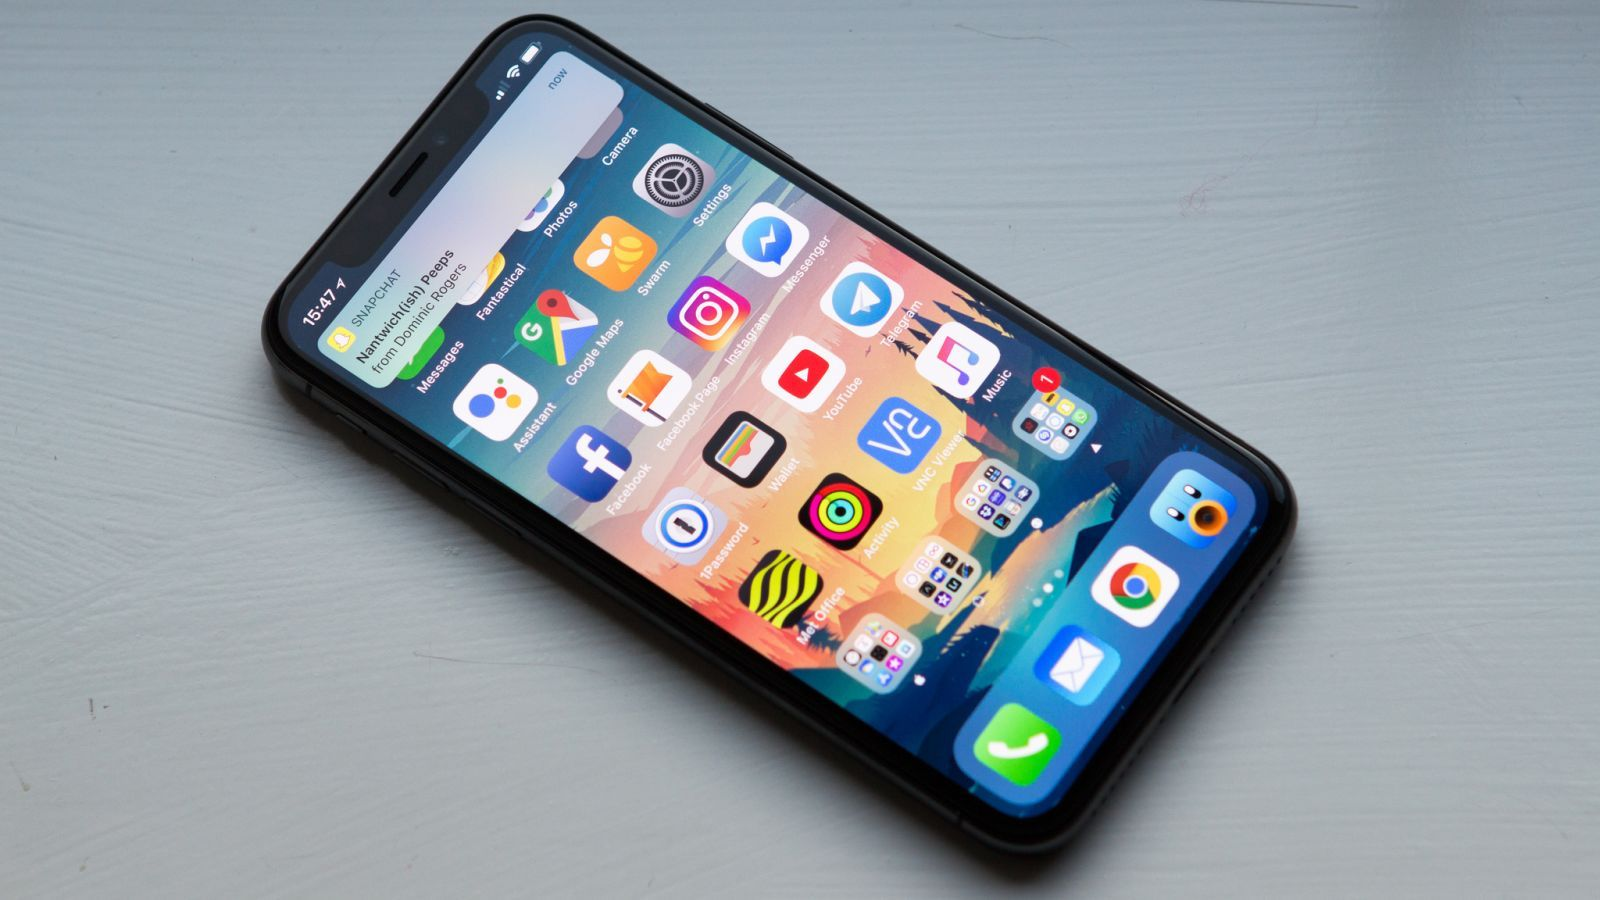 iphone x al mejor precio con casi 300 euros de descuento. Black Bedroom Furniture Sets. Home Design Ideas